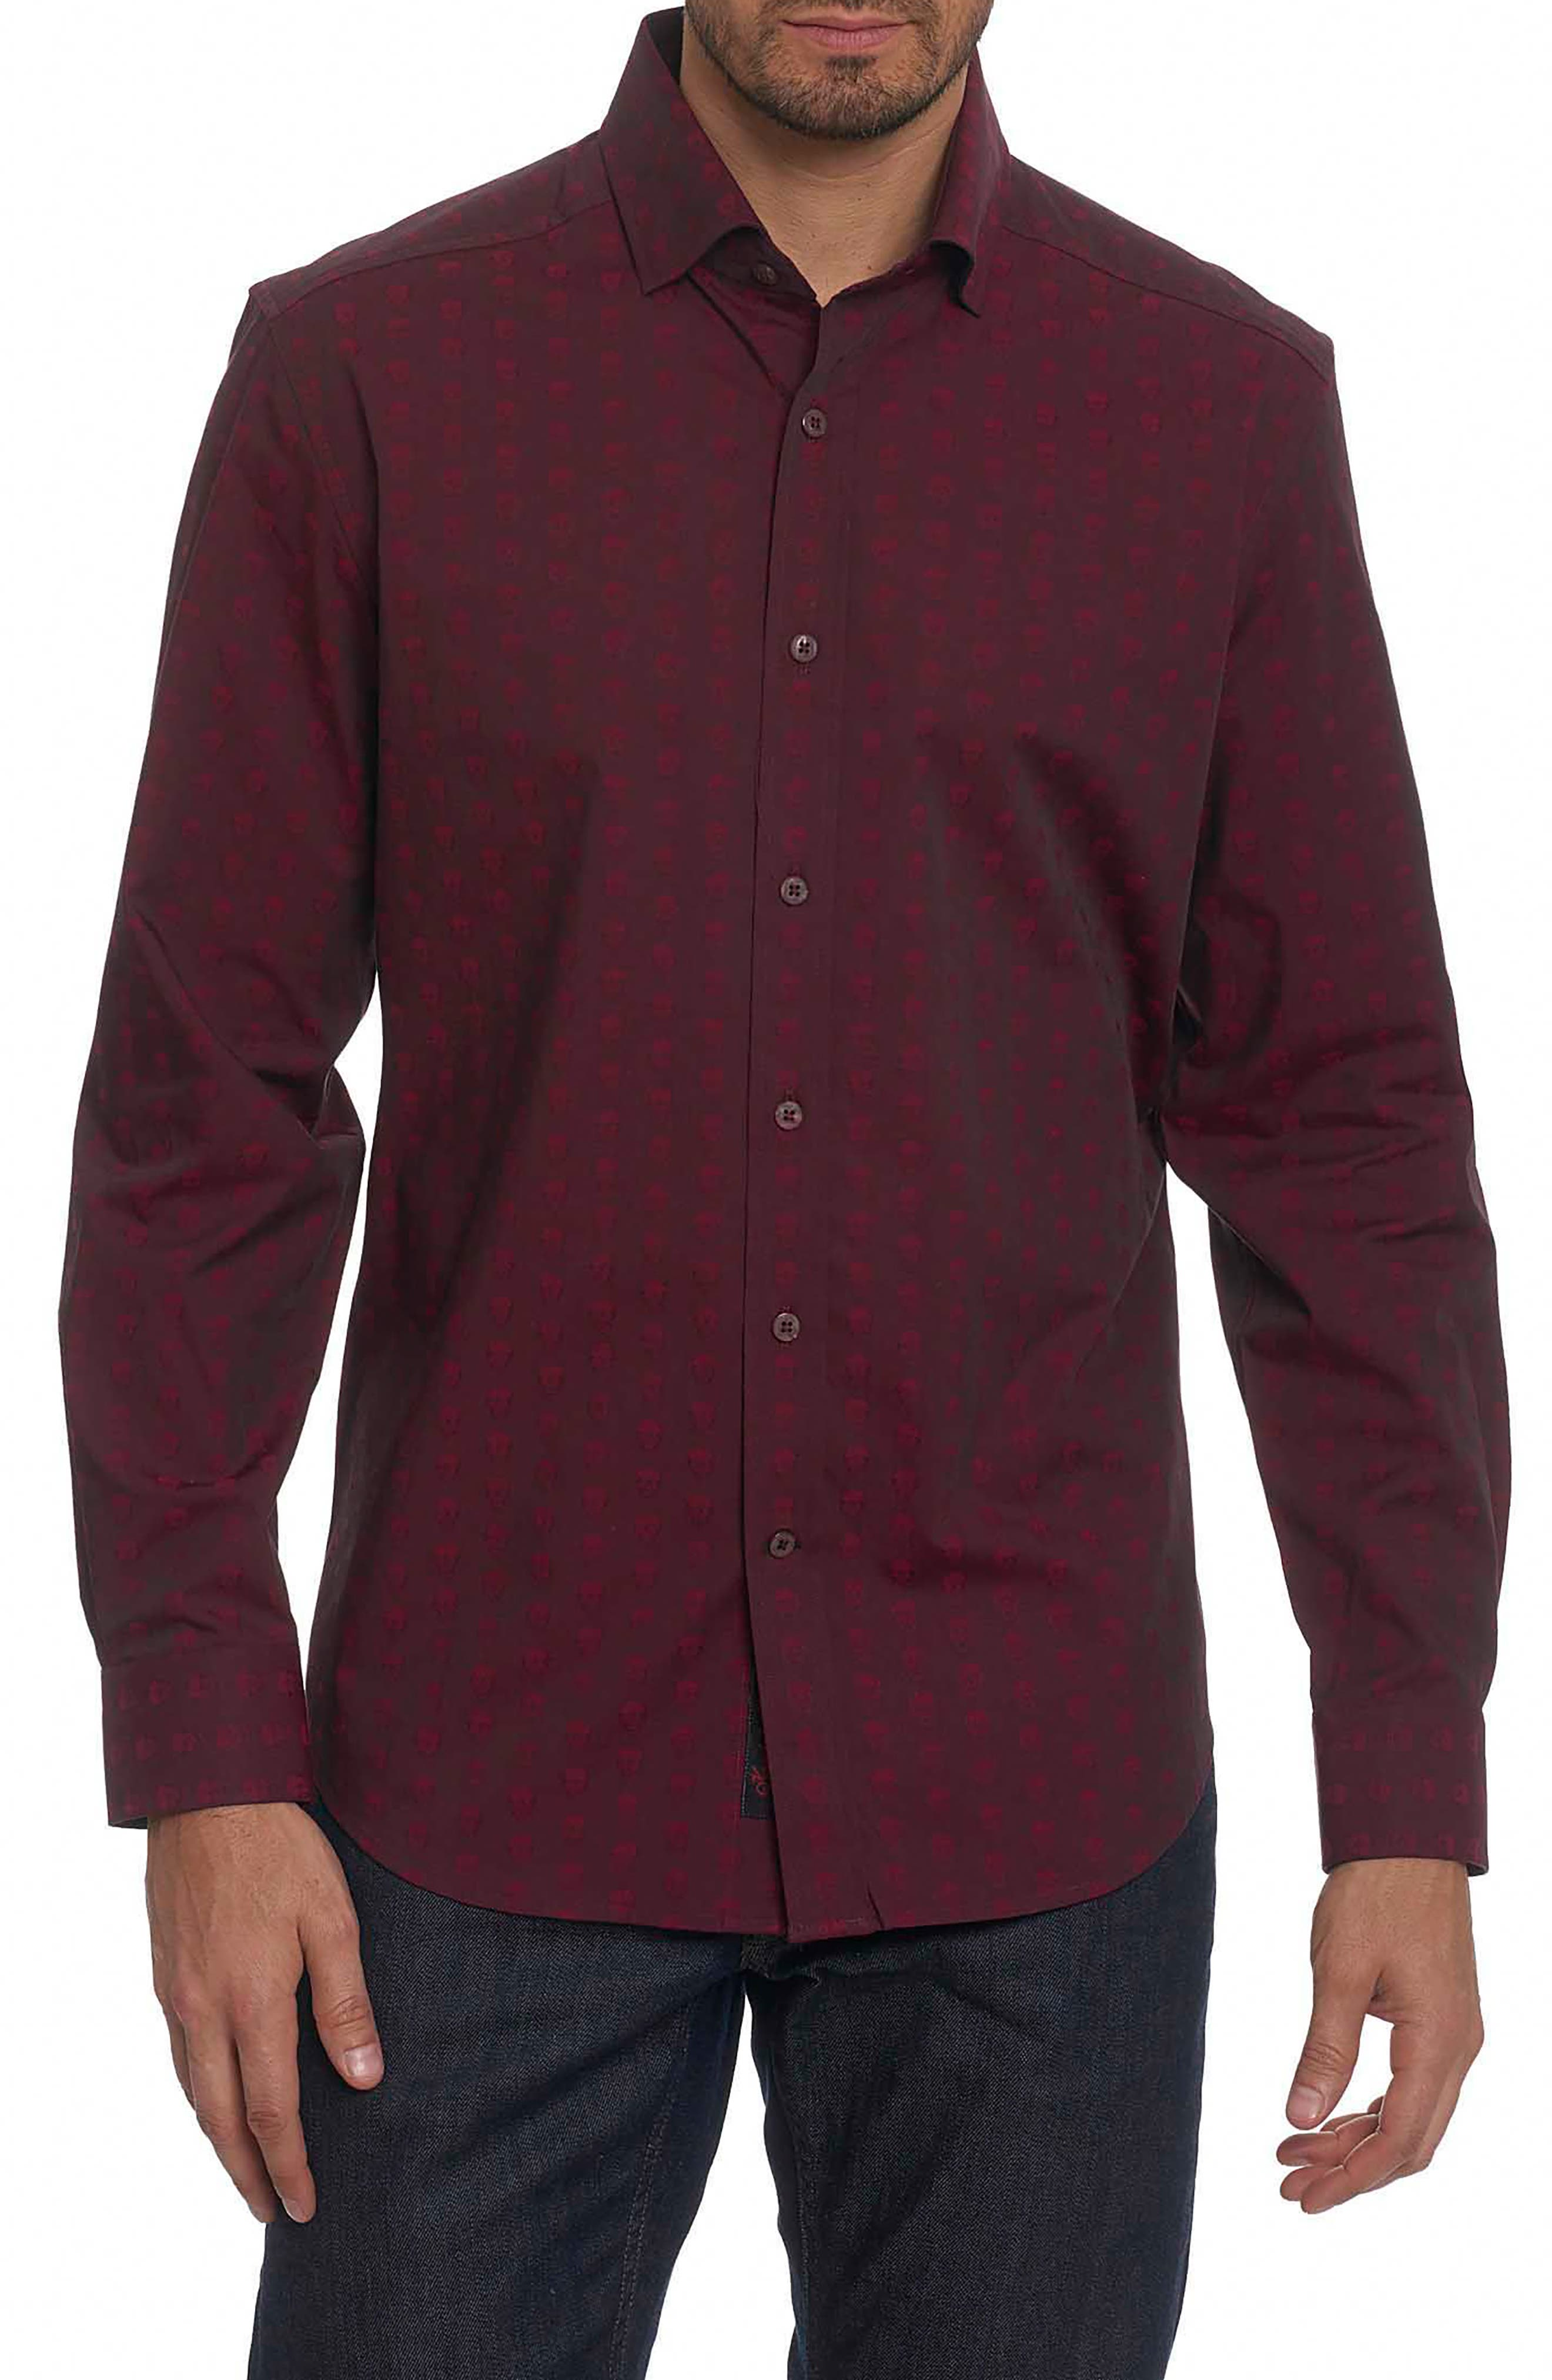 Deven Tailored Fit Sport Shirt,                             Main thumbnail 1, color,                             600